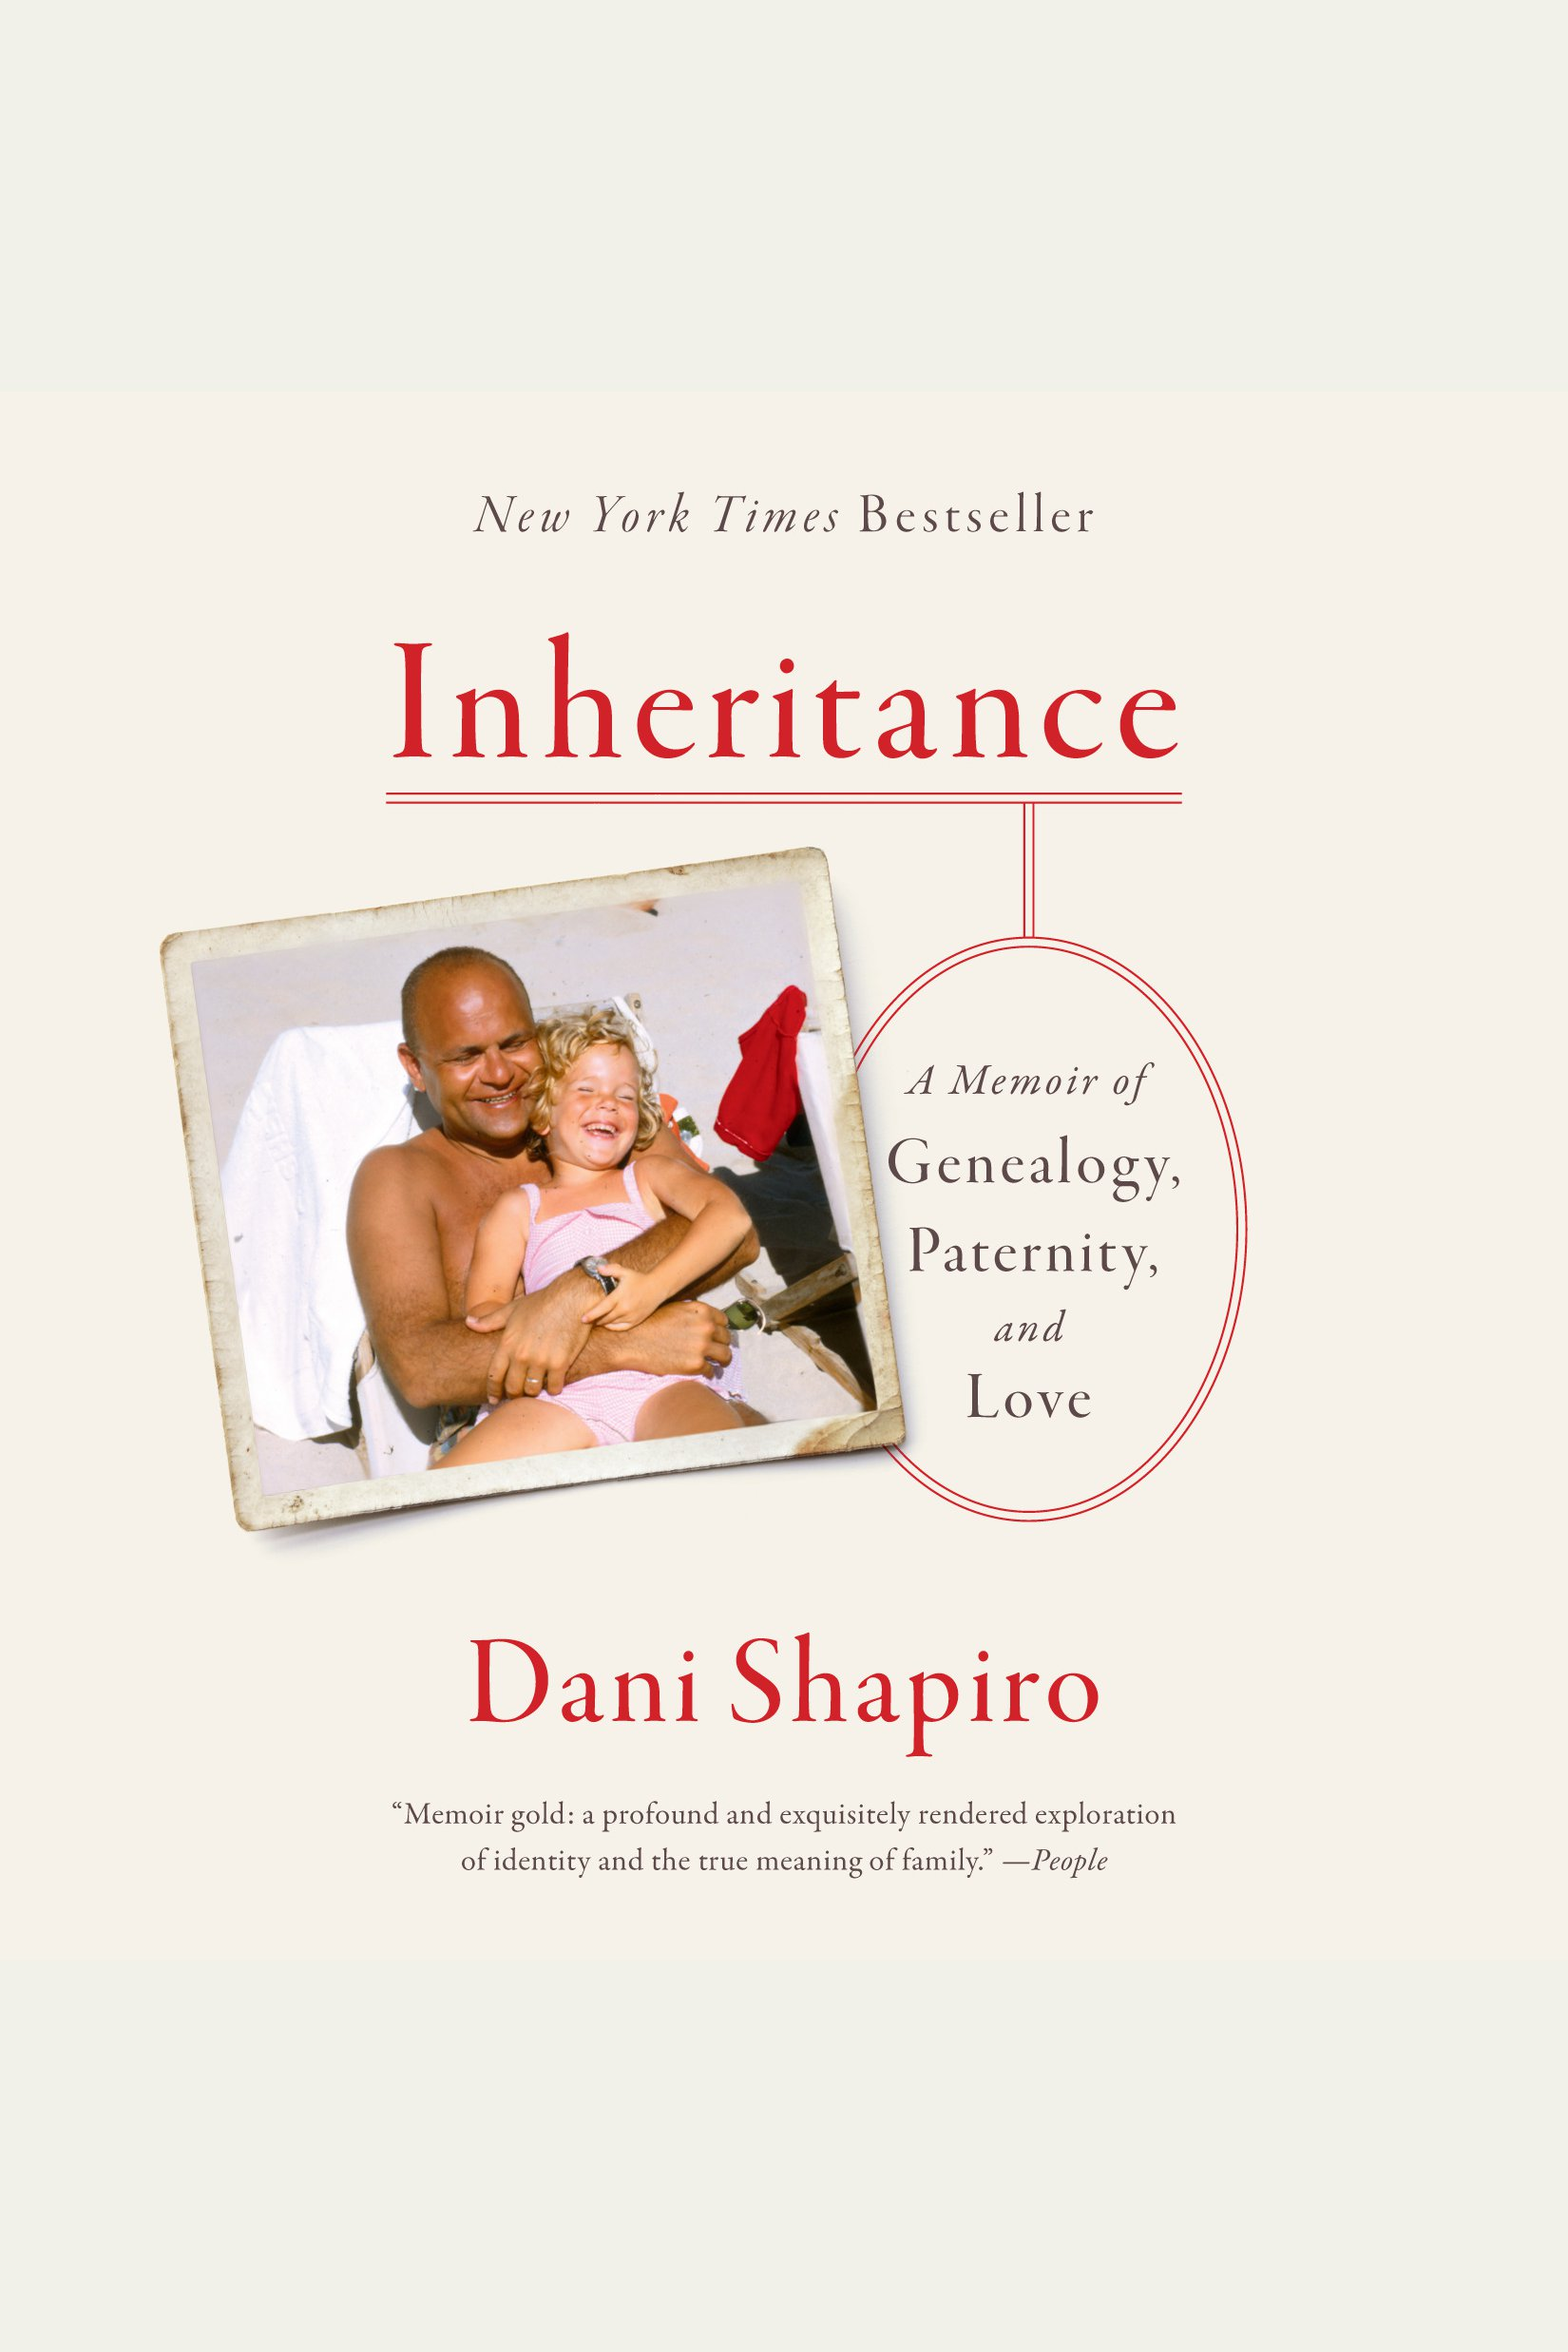 Inheritance [electronic resource] : A Memoir of Genealogy, Paternity, and Love